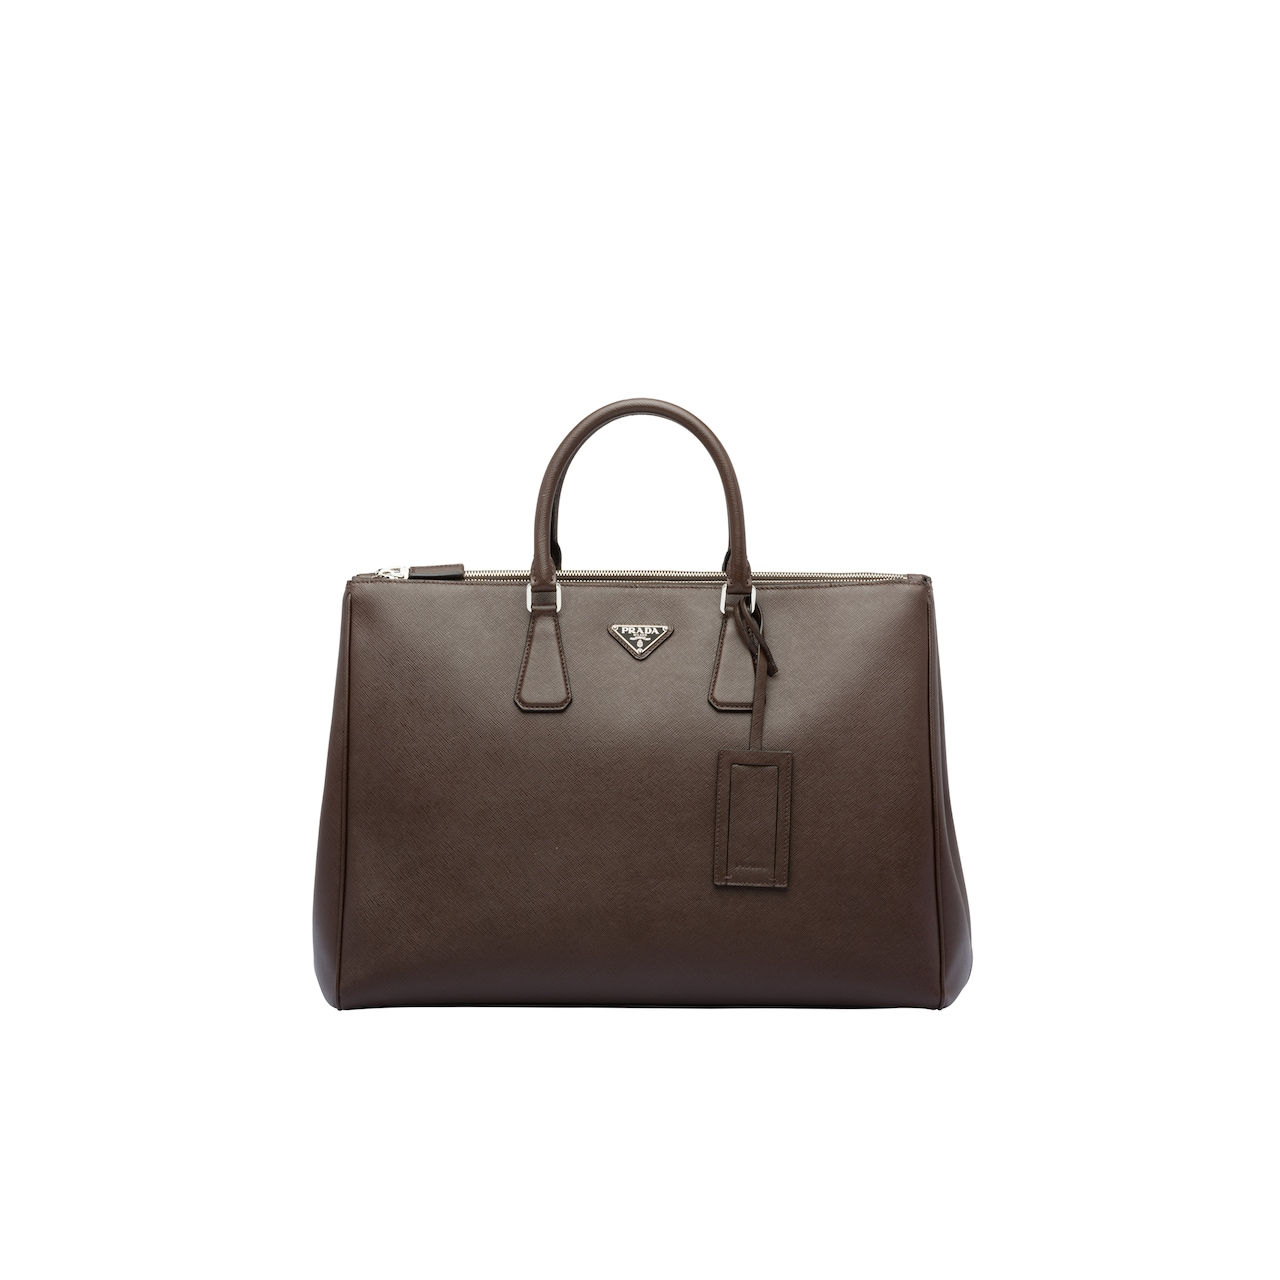 6da44712f0 Prada Galleria Saffiano leather bag